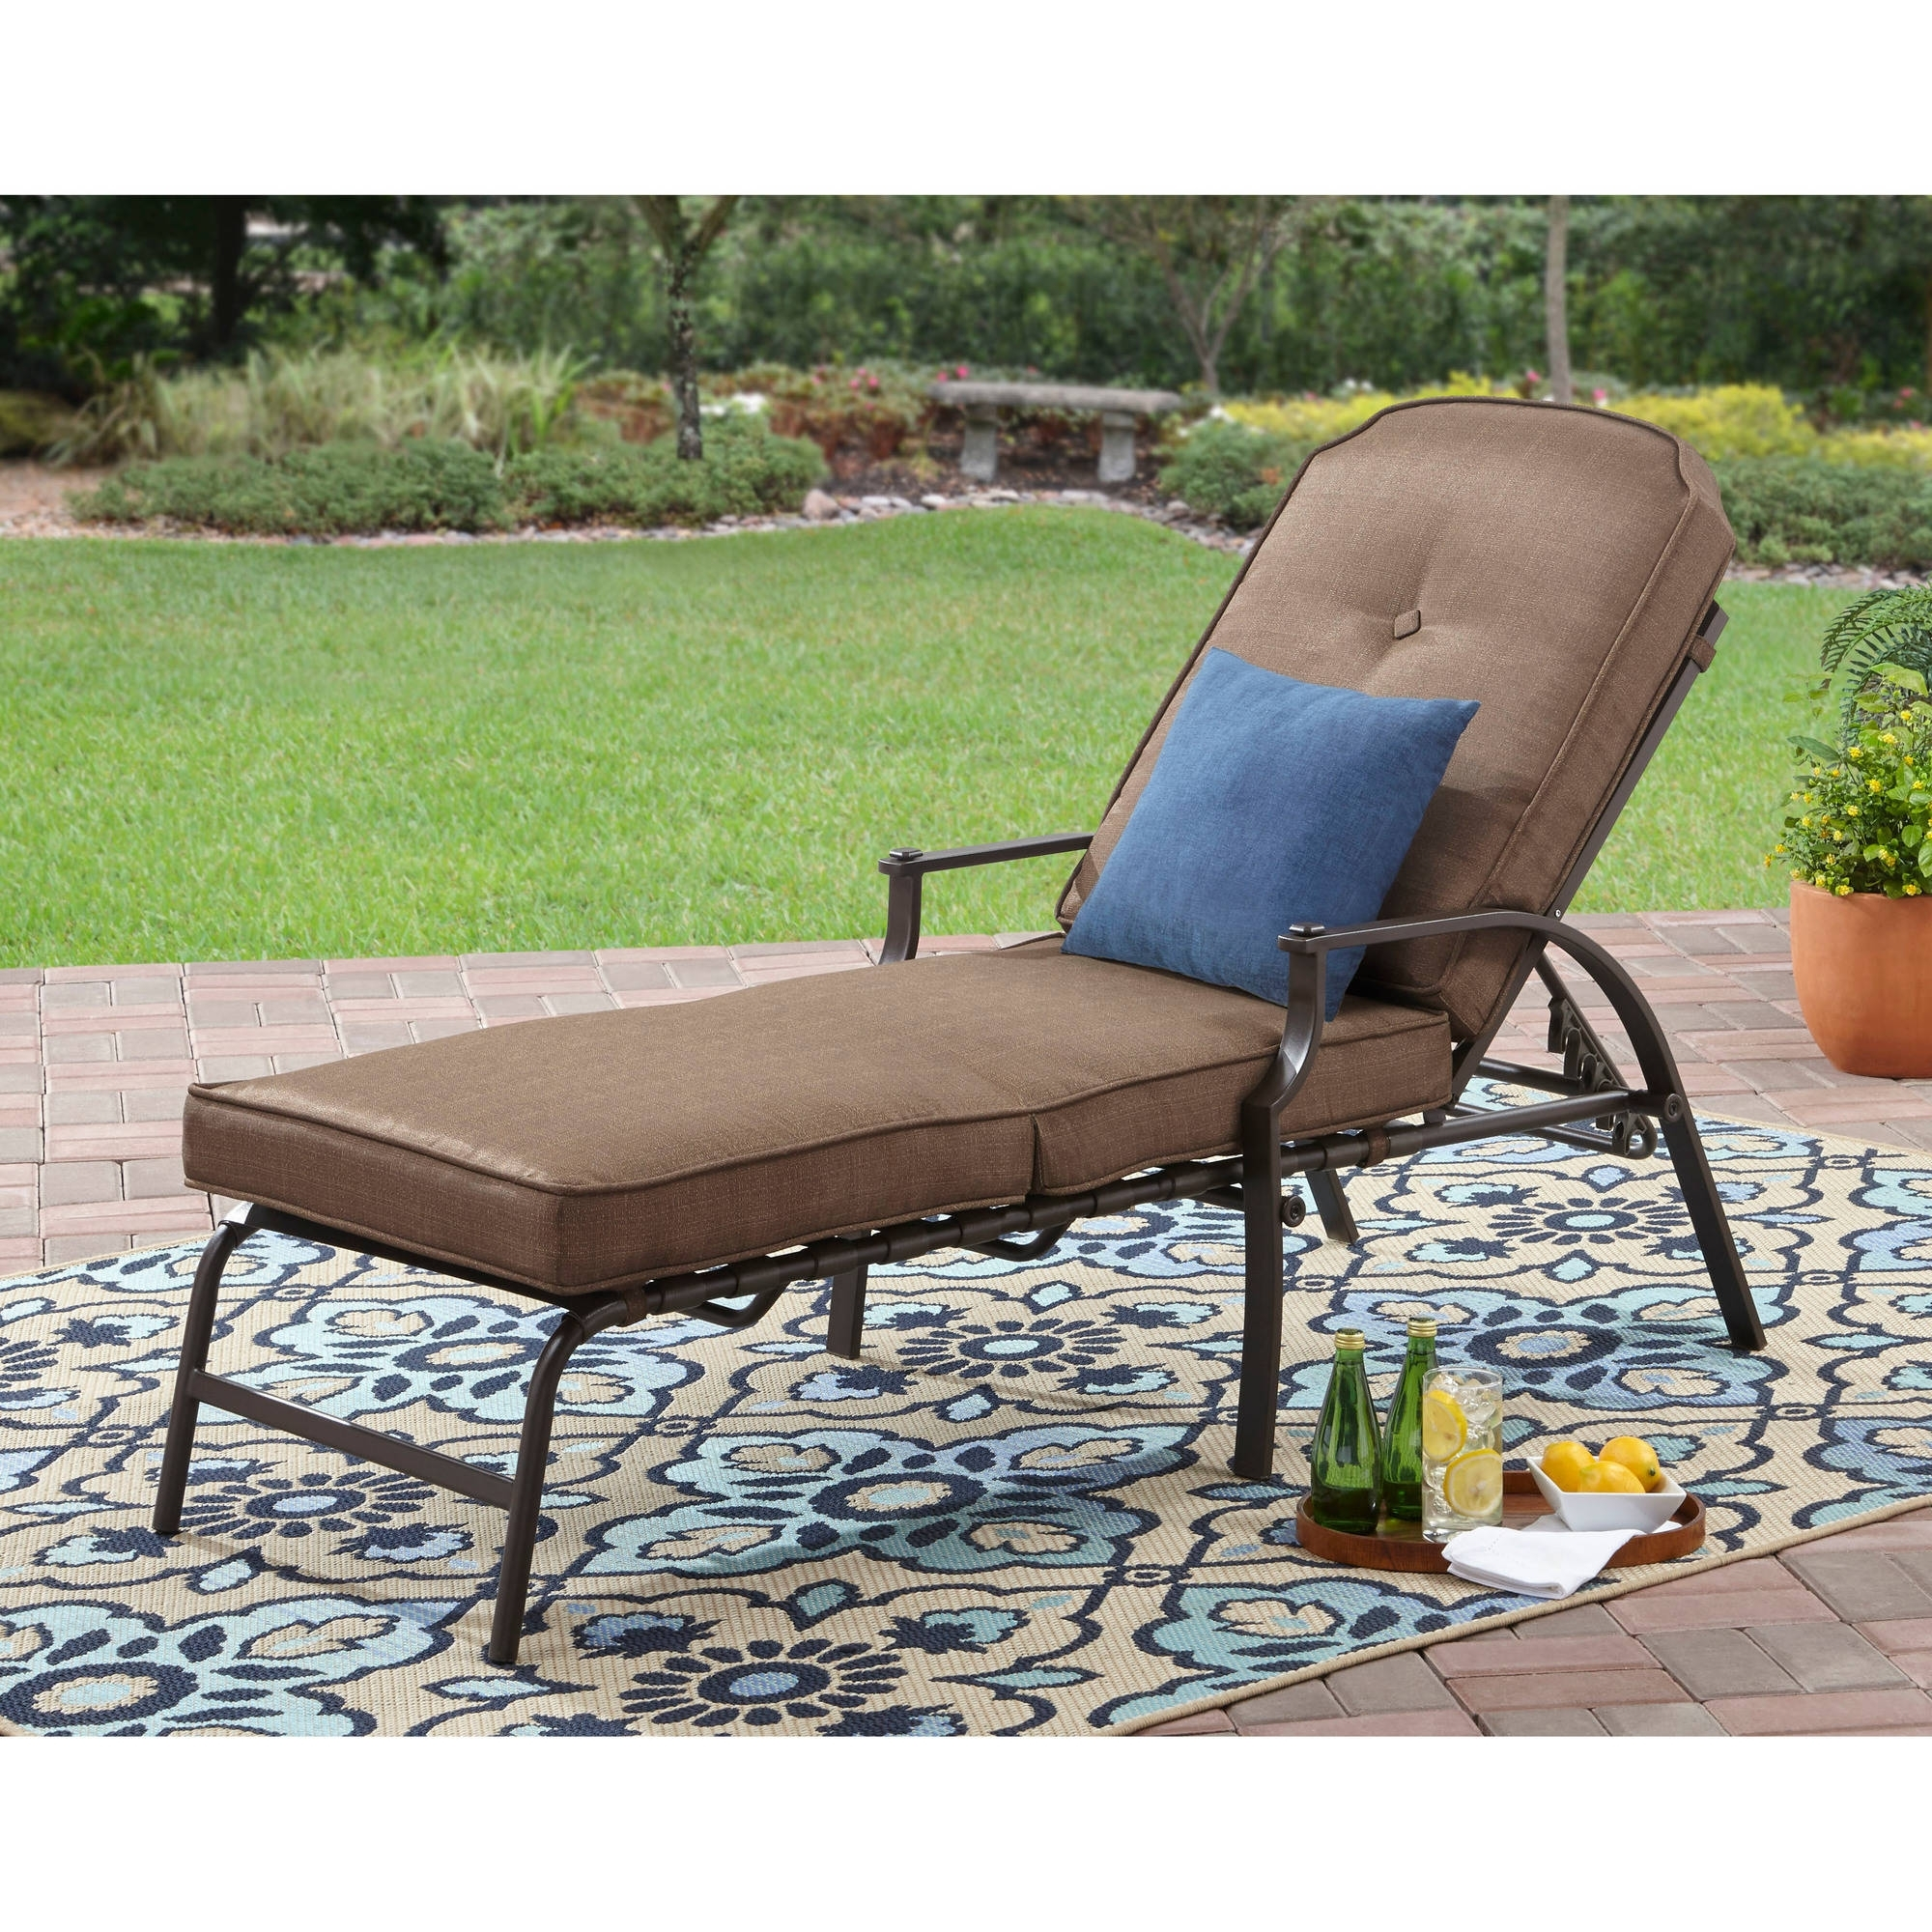 Mainstays Wentworth Chaise Lounge – Walmart With Favorite Outdoor Chaise Lounge Chairs At Walmart (View 7 of 15)